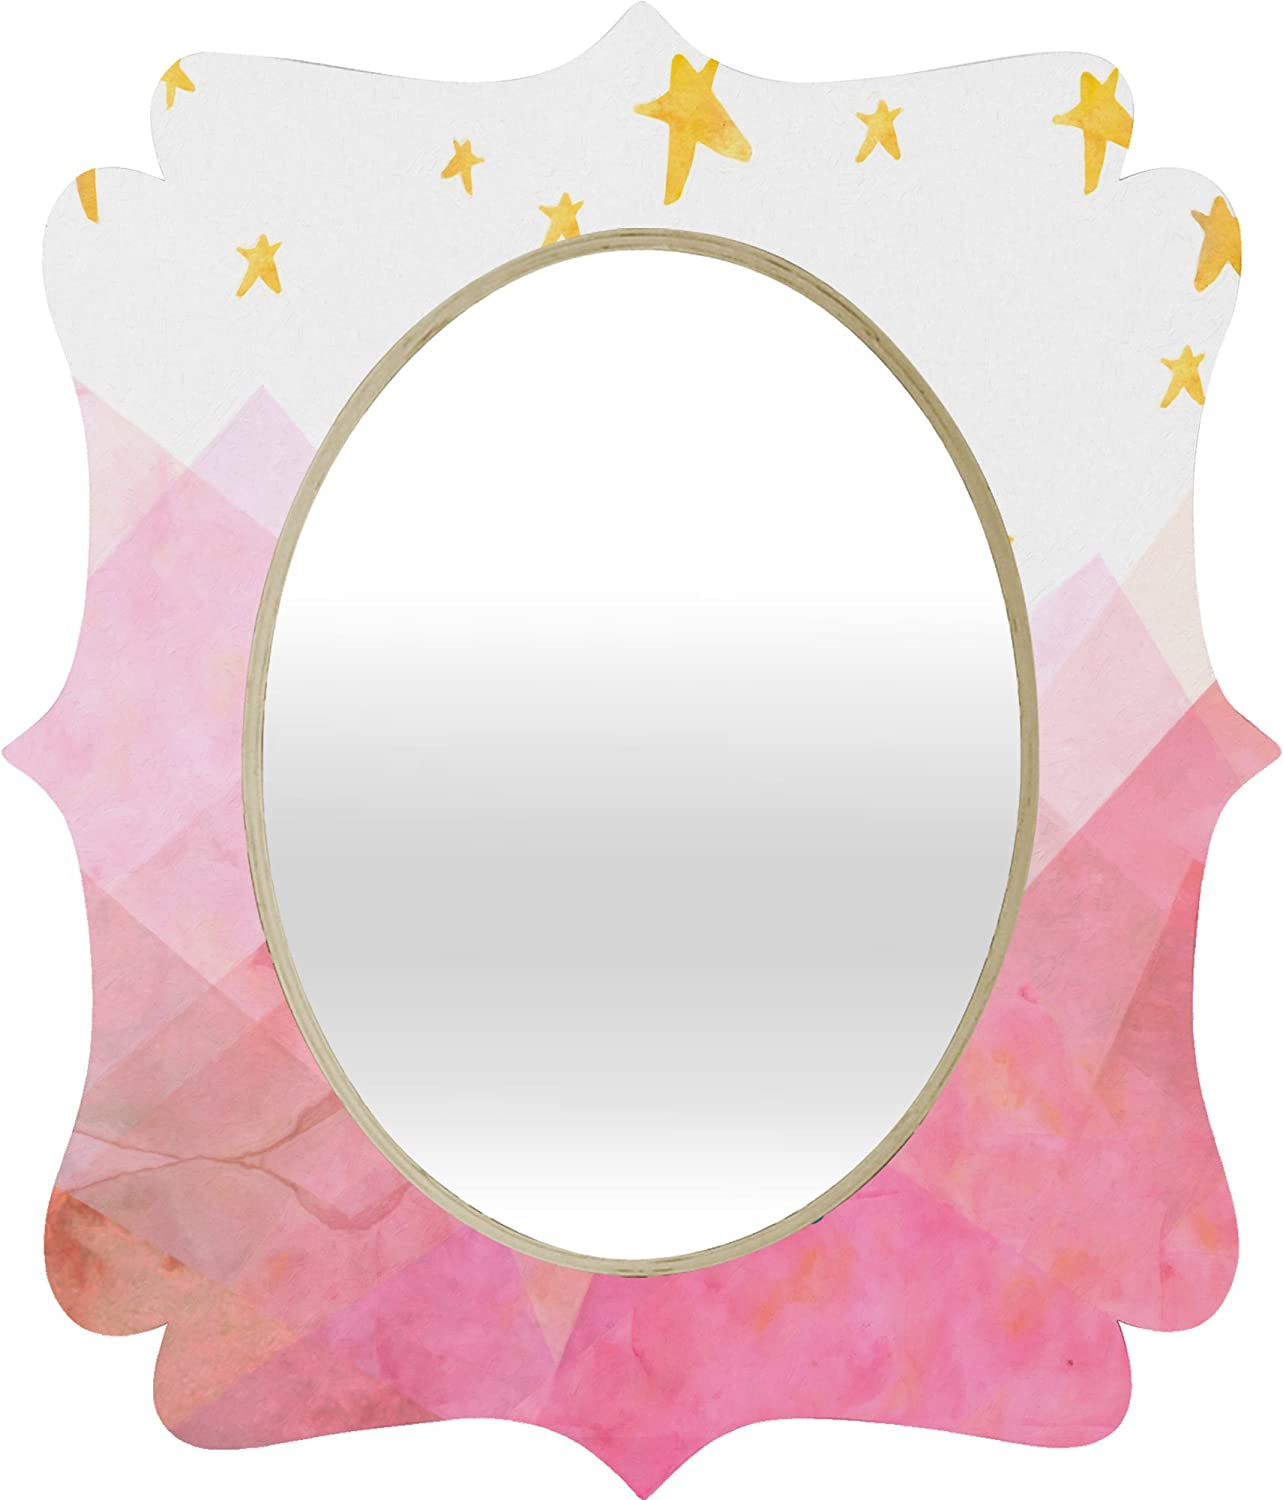 Deny Designs Hello Sayang Baroque Mirror, You Mustn't Be Afraid to Dream a Little Bigger Darling